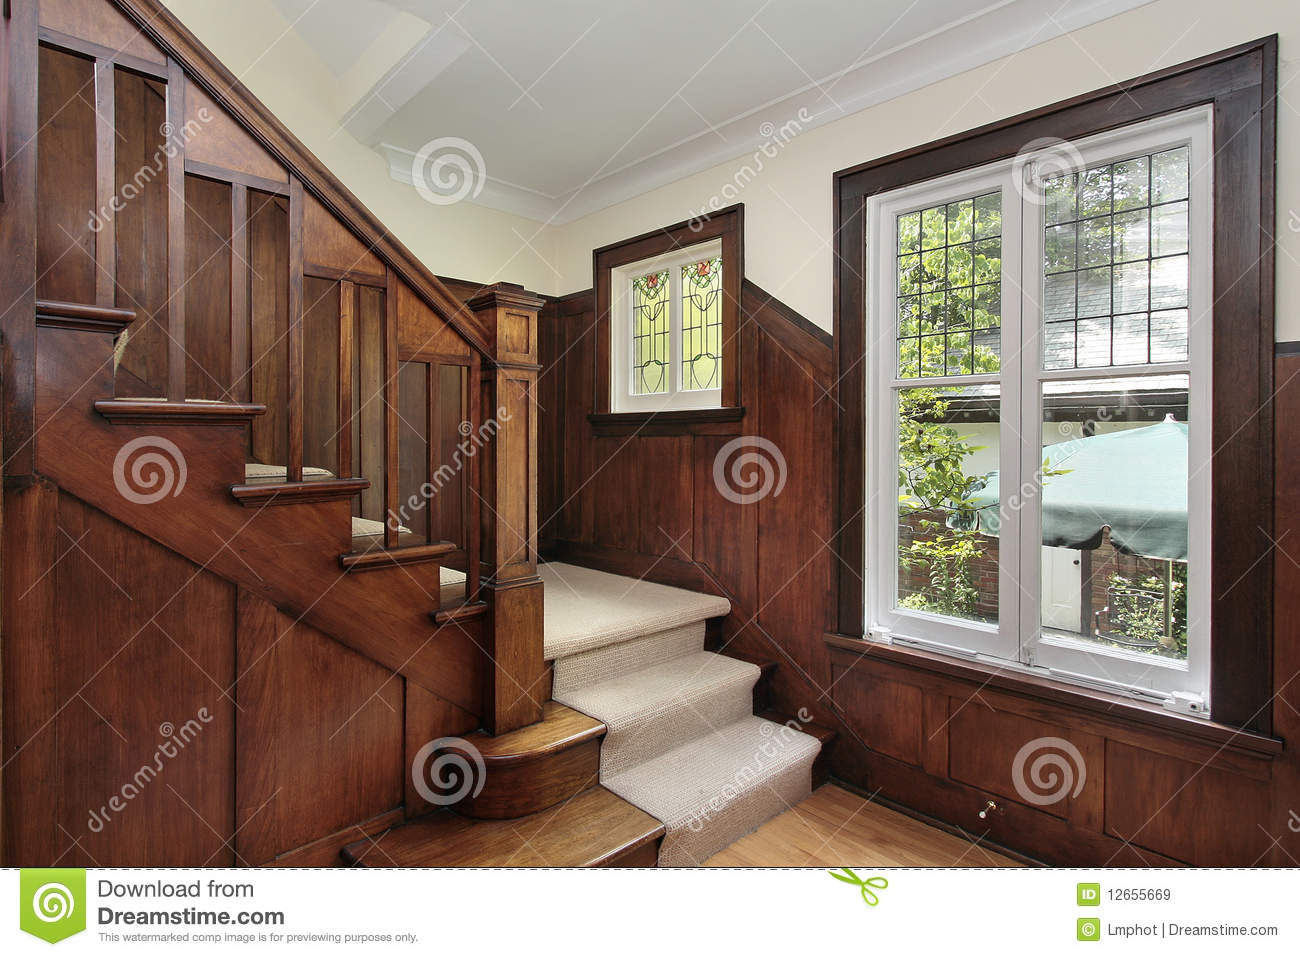 Foyer Window Cost : Foyer with wood paneling stock image of entryway